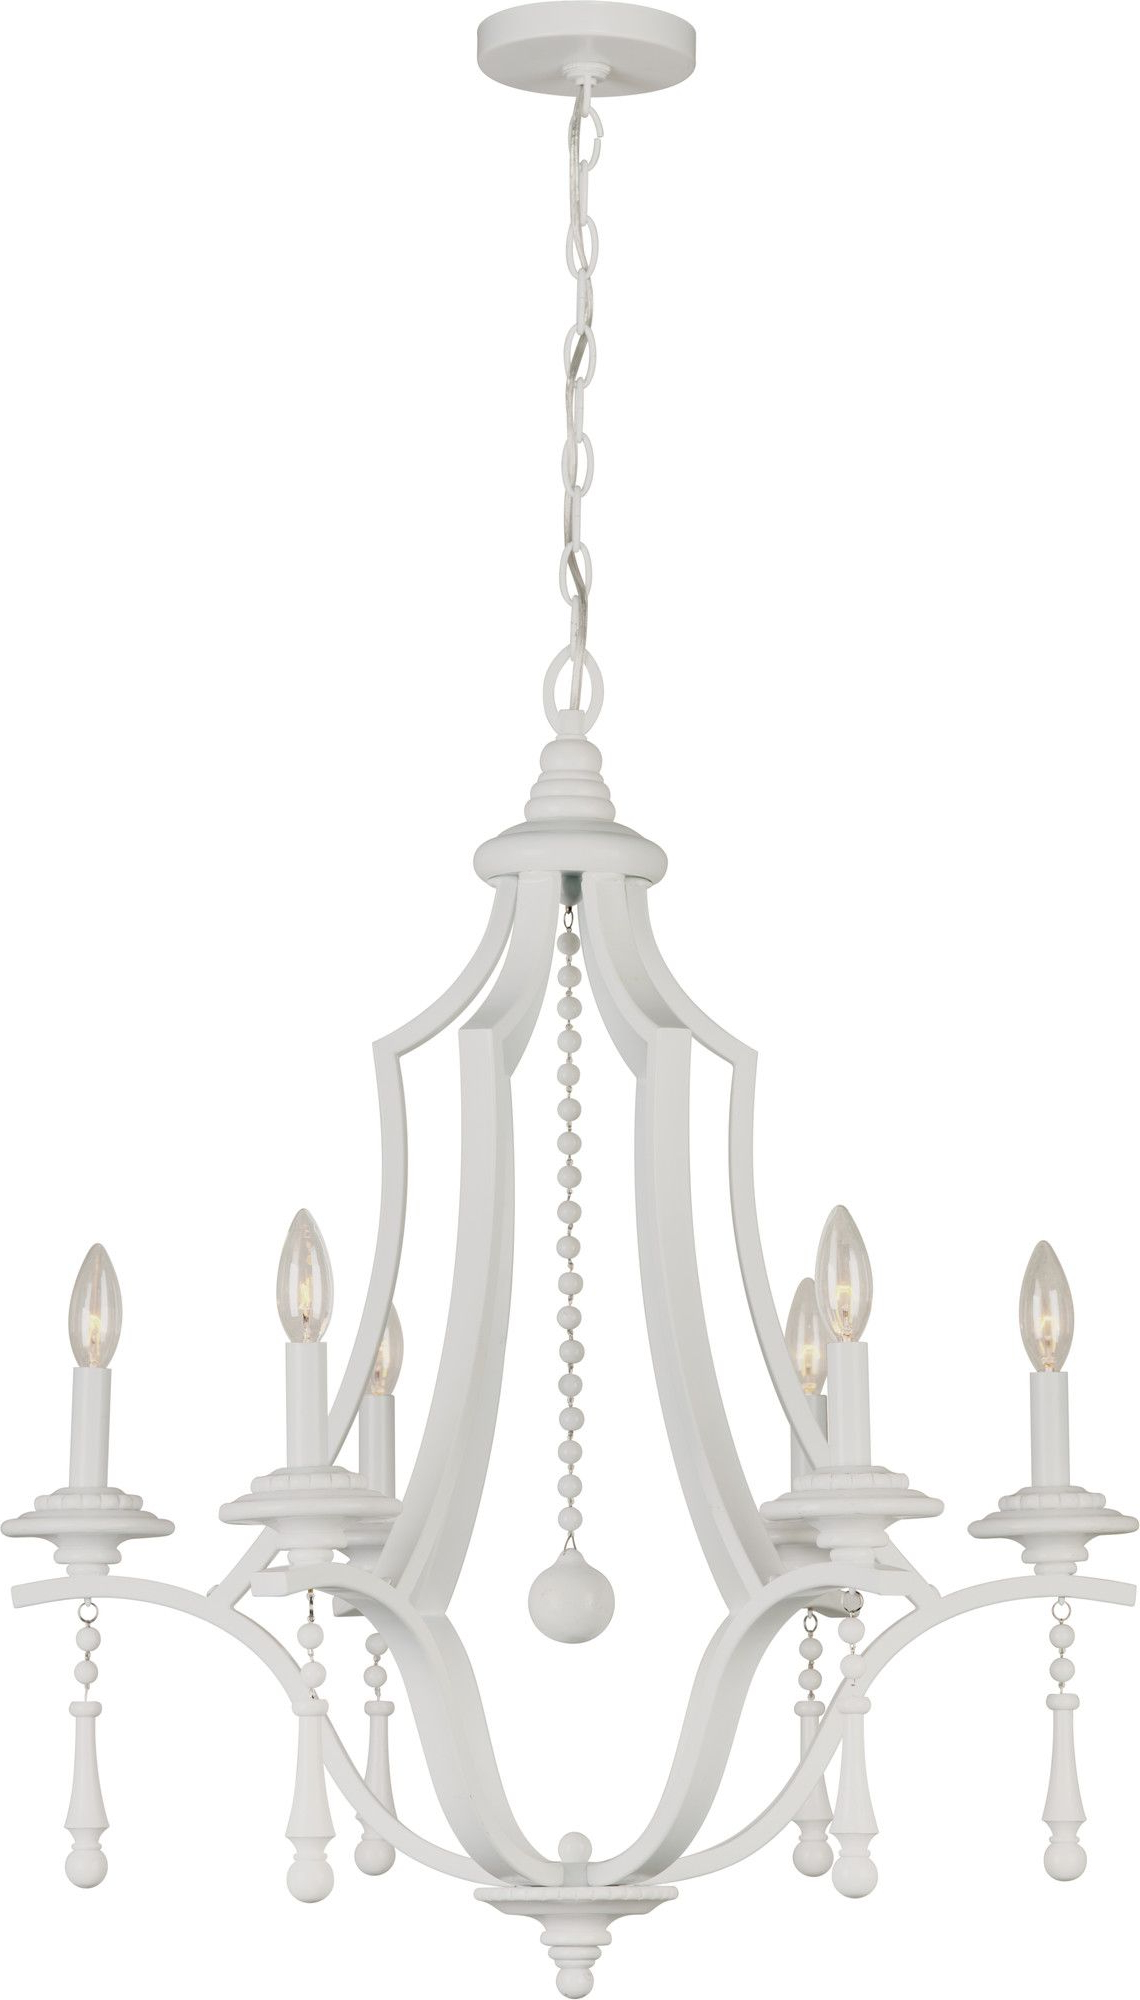 Diaz 6 Light Candle Style Chandeliers For Popular Parson 6 Light Chandelier (View 6 of 25)